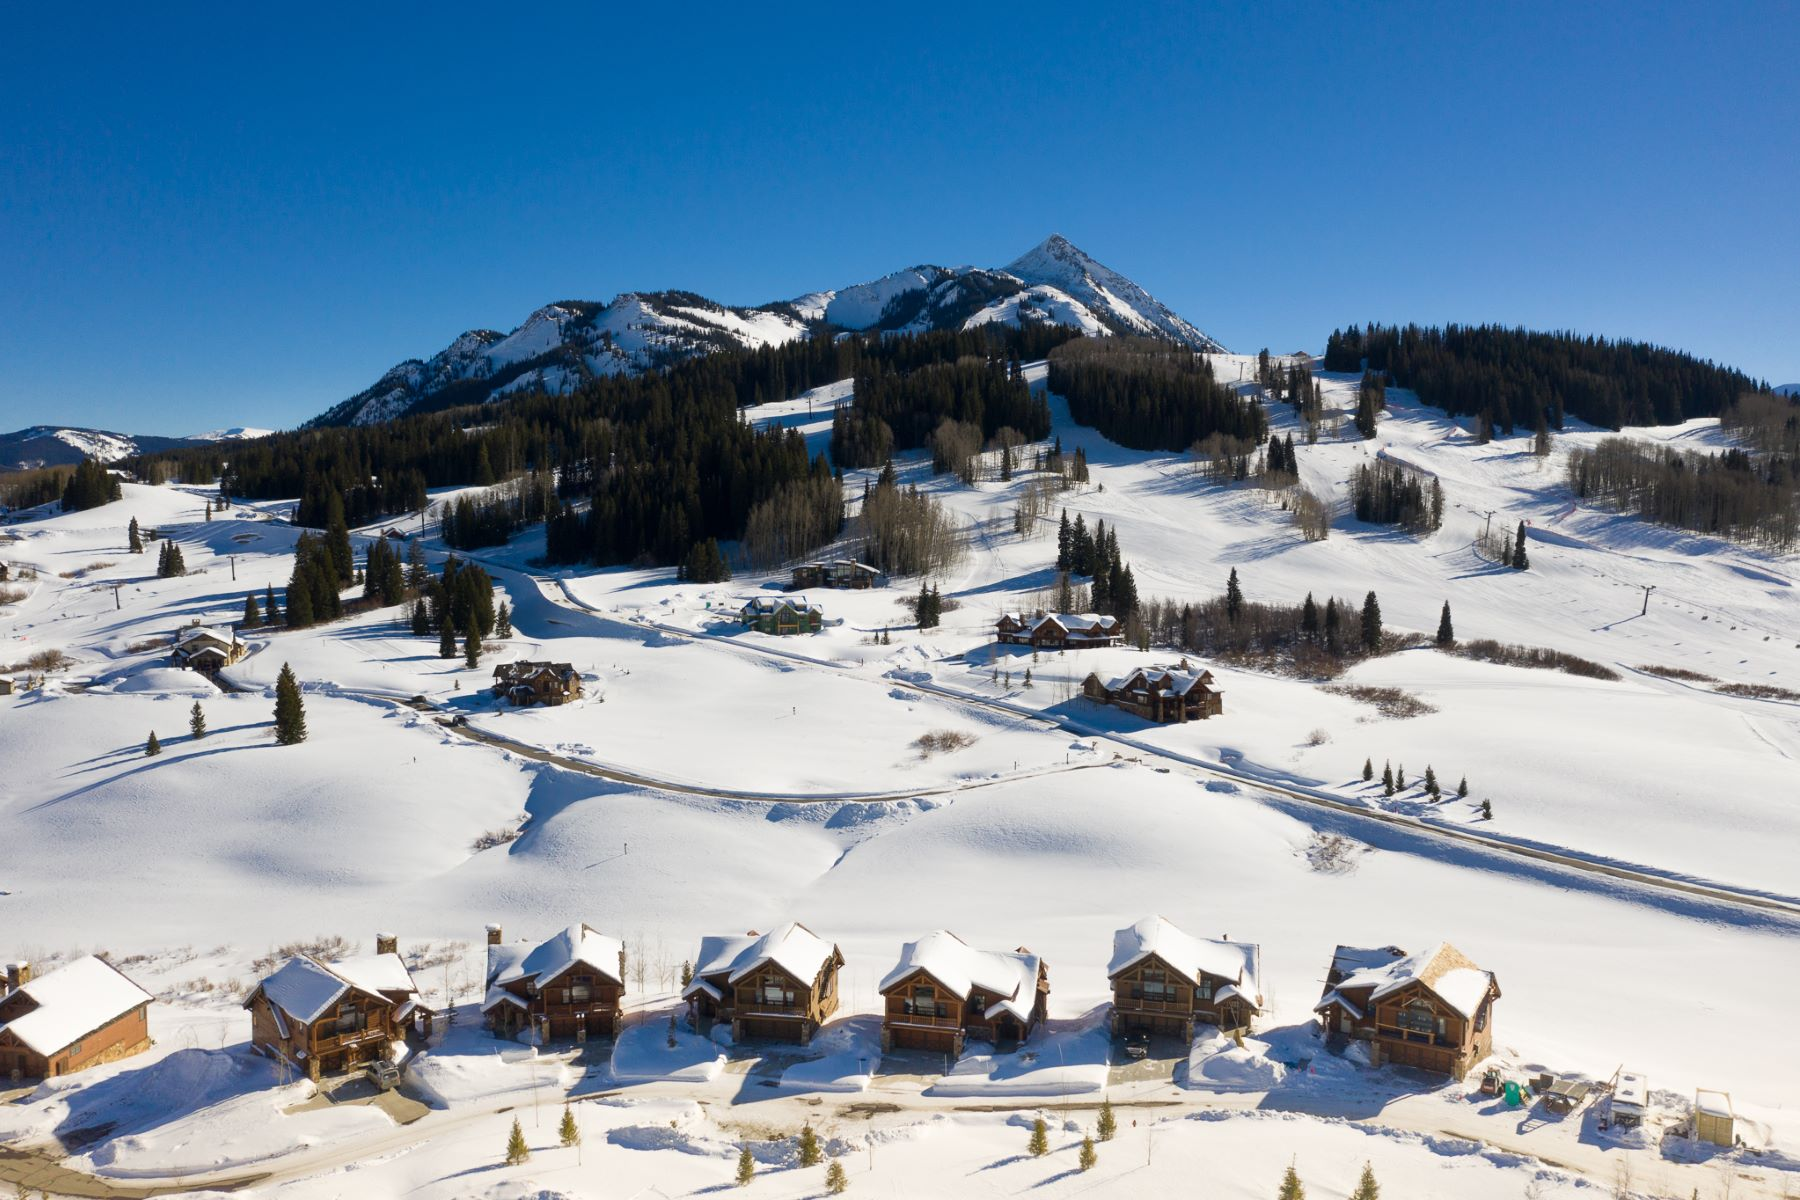 Land for Sale at Ski Resort Development Land 2 Appaloosa Road Mount Crested Butte, Colorado 81225 United States